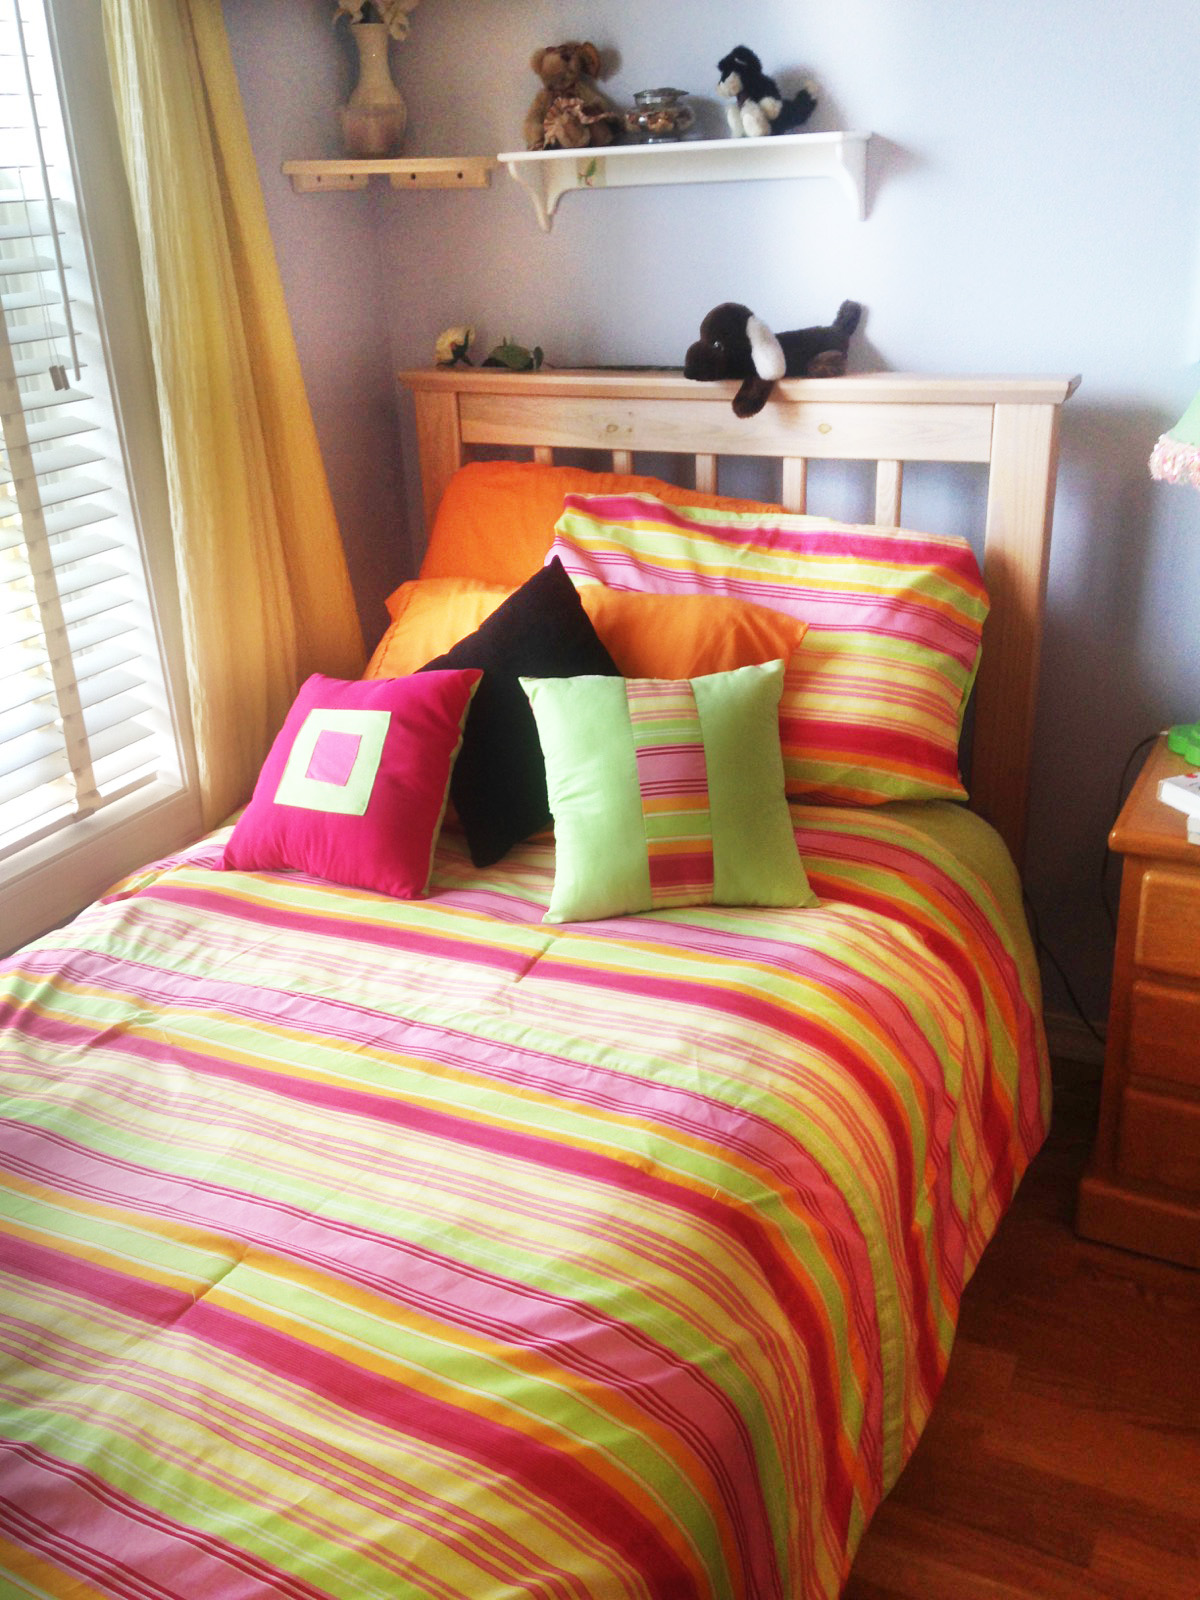 Make your bed daily to create a finished, neat look